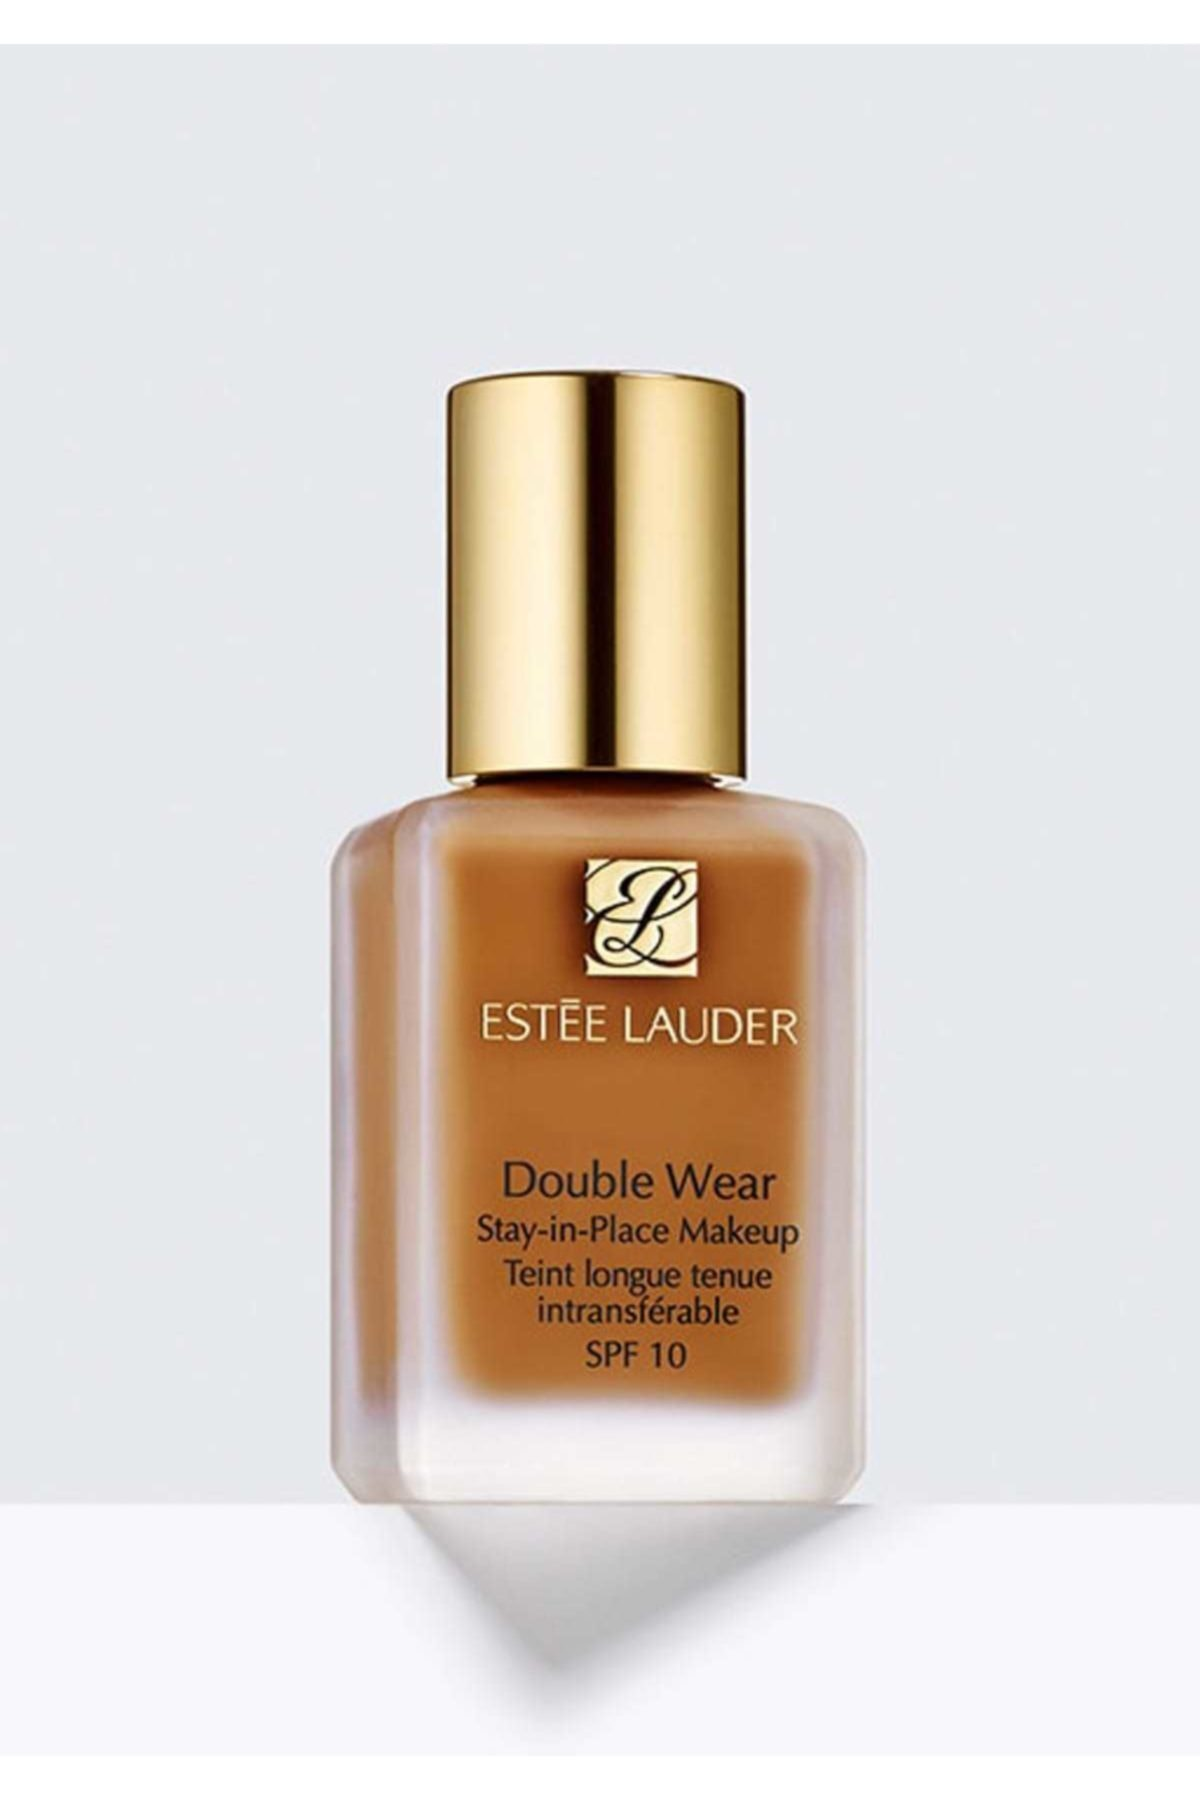 Estee Lauder Fondöten - Double Wear Foundation S.I.P Spf 10 5C2 Sepia 30 ml 887167449107 1